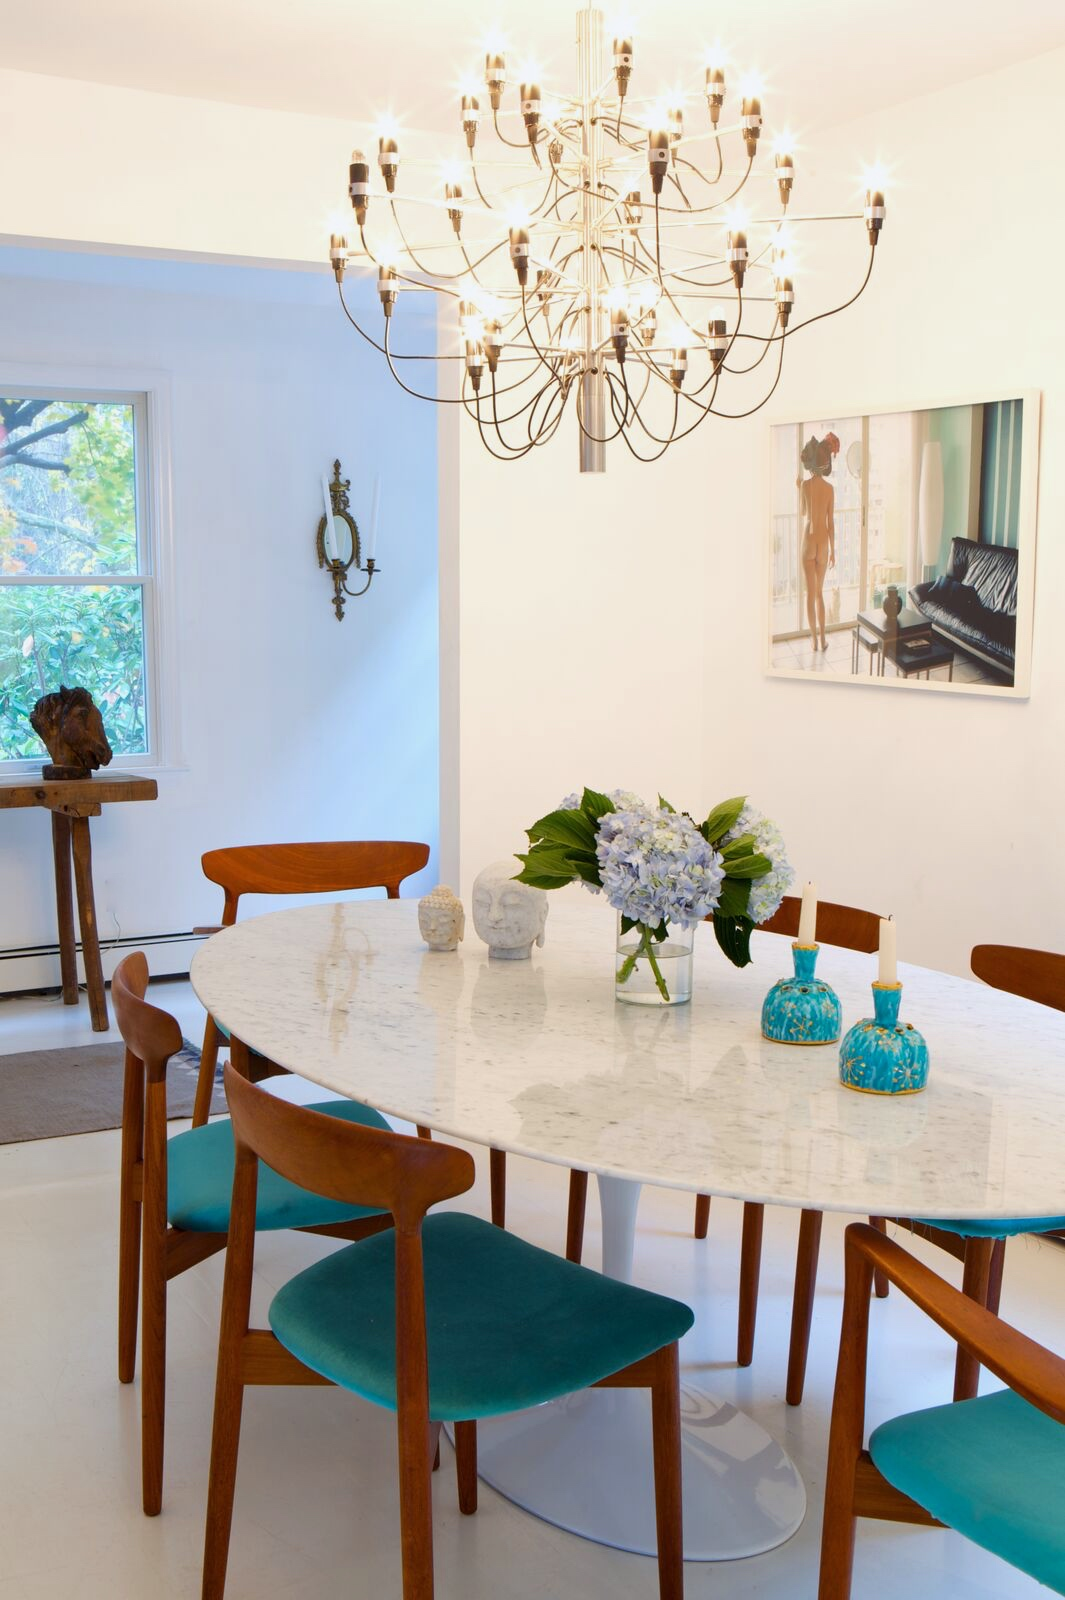 AtHome In The Hamptons With Norwegian Designer Anna Cappelen - Hamptons kitchen design